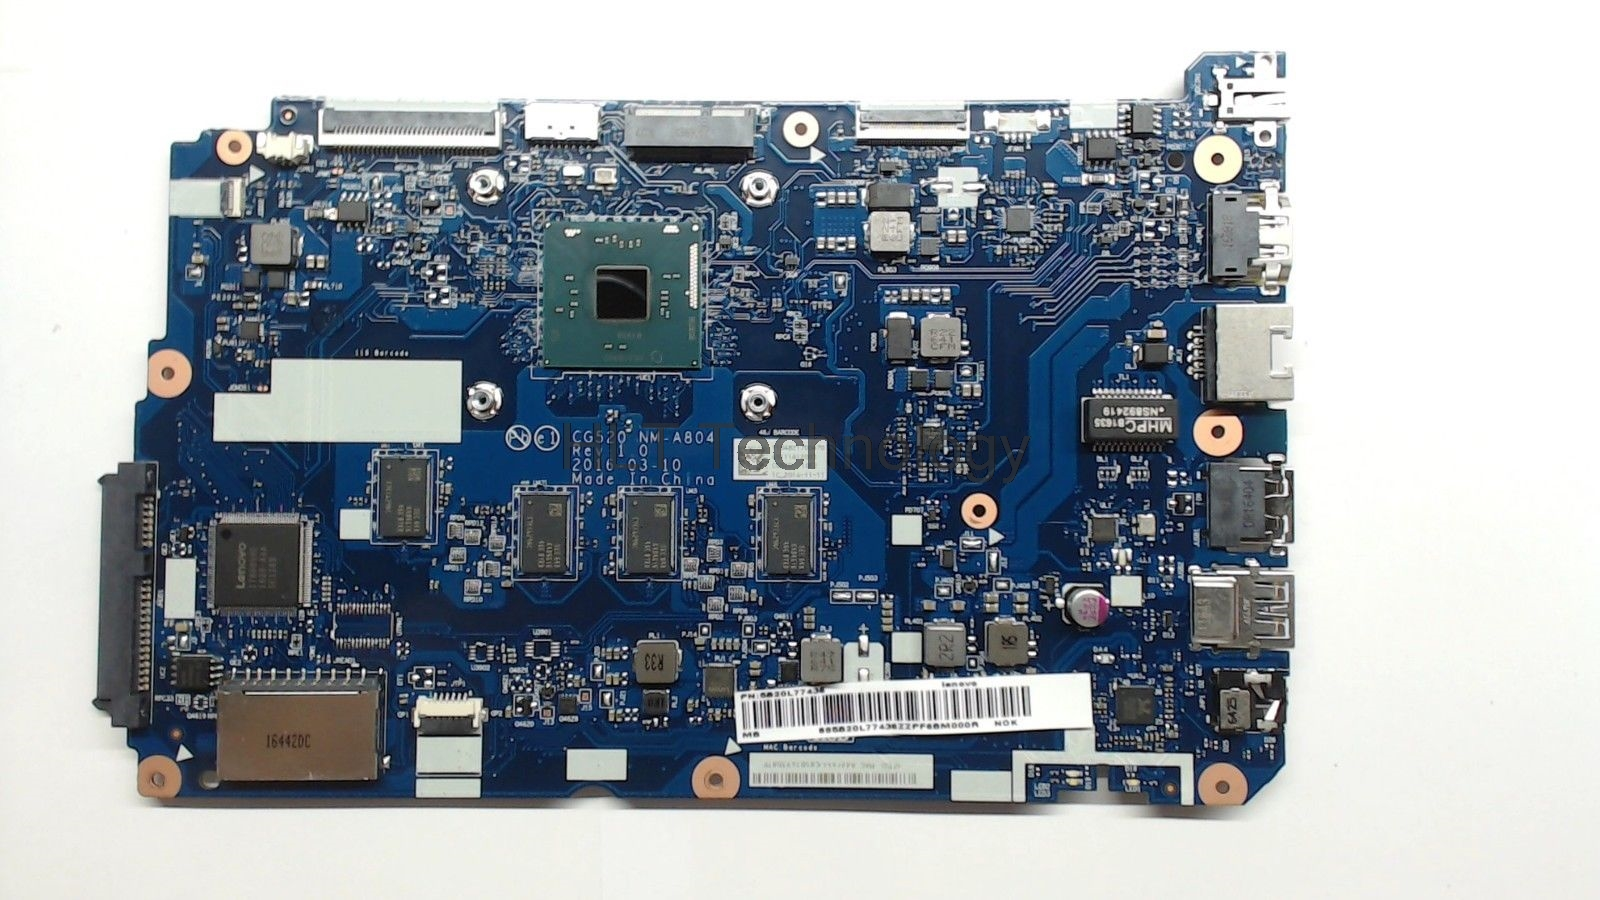 HOLYTIME laptop <font><b>motherboard</b></font> For <font><b>lenovo</b></font> <font><b>ideapad</b></font> <font><b>110</b></font>-15IBR CG520 NM-A804 5B20L77440 Main board SR2KN N3060 CPU 4G RAM DDR3 image